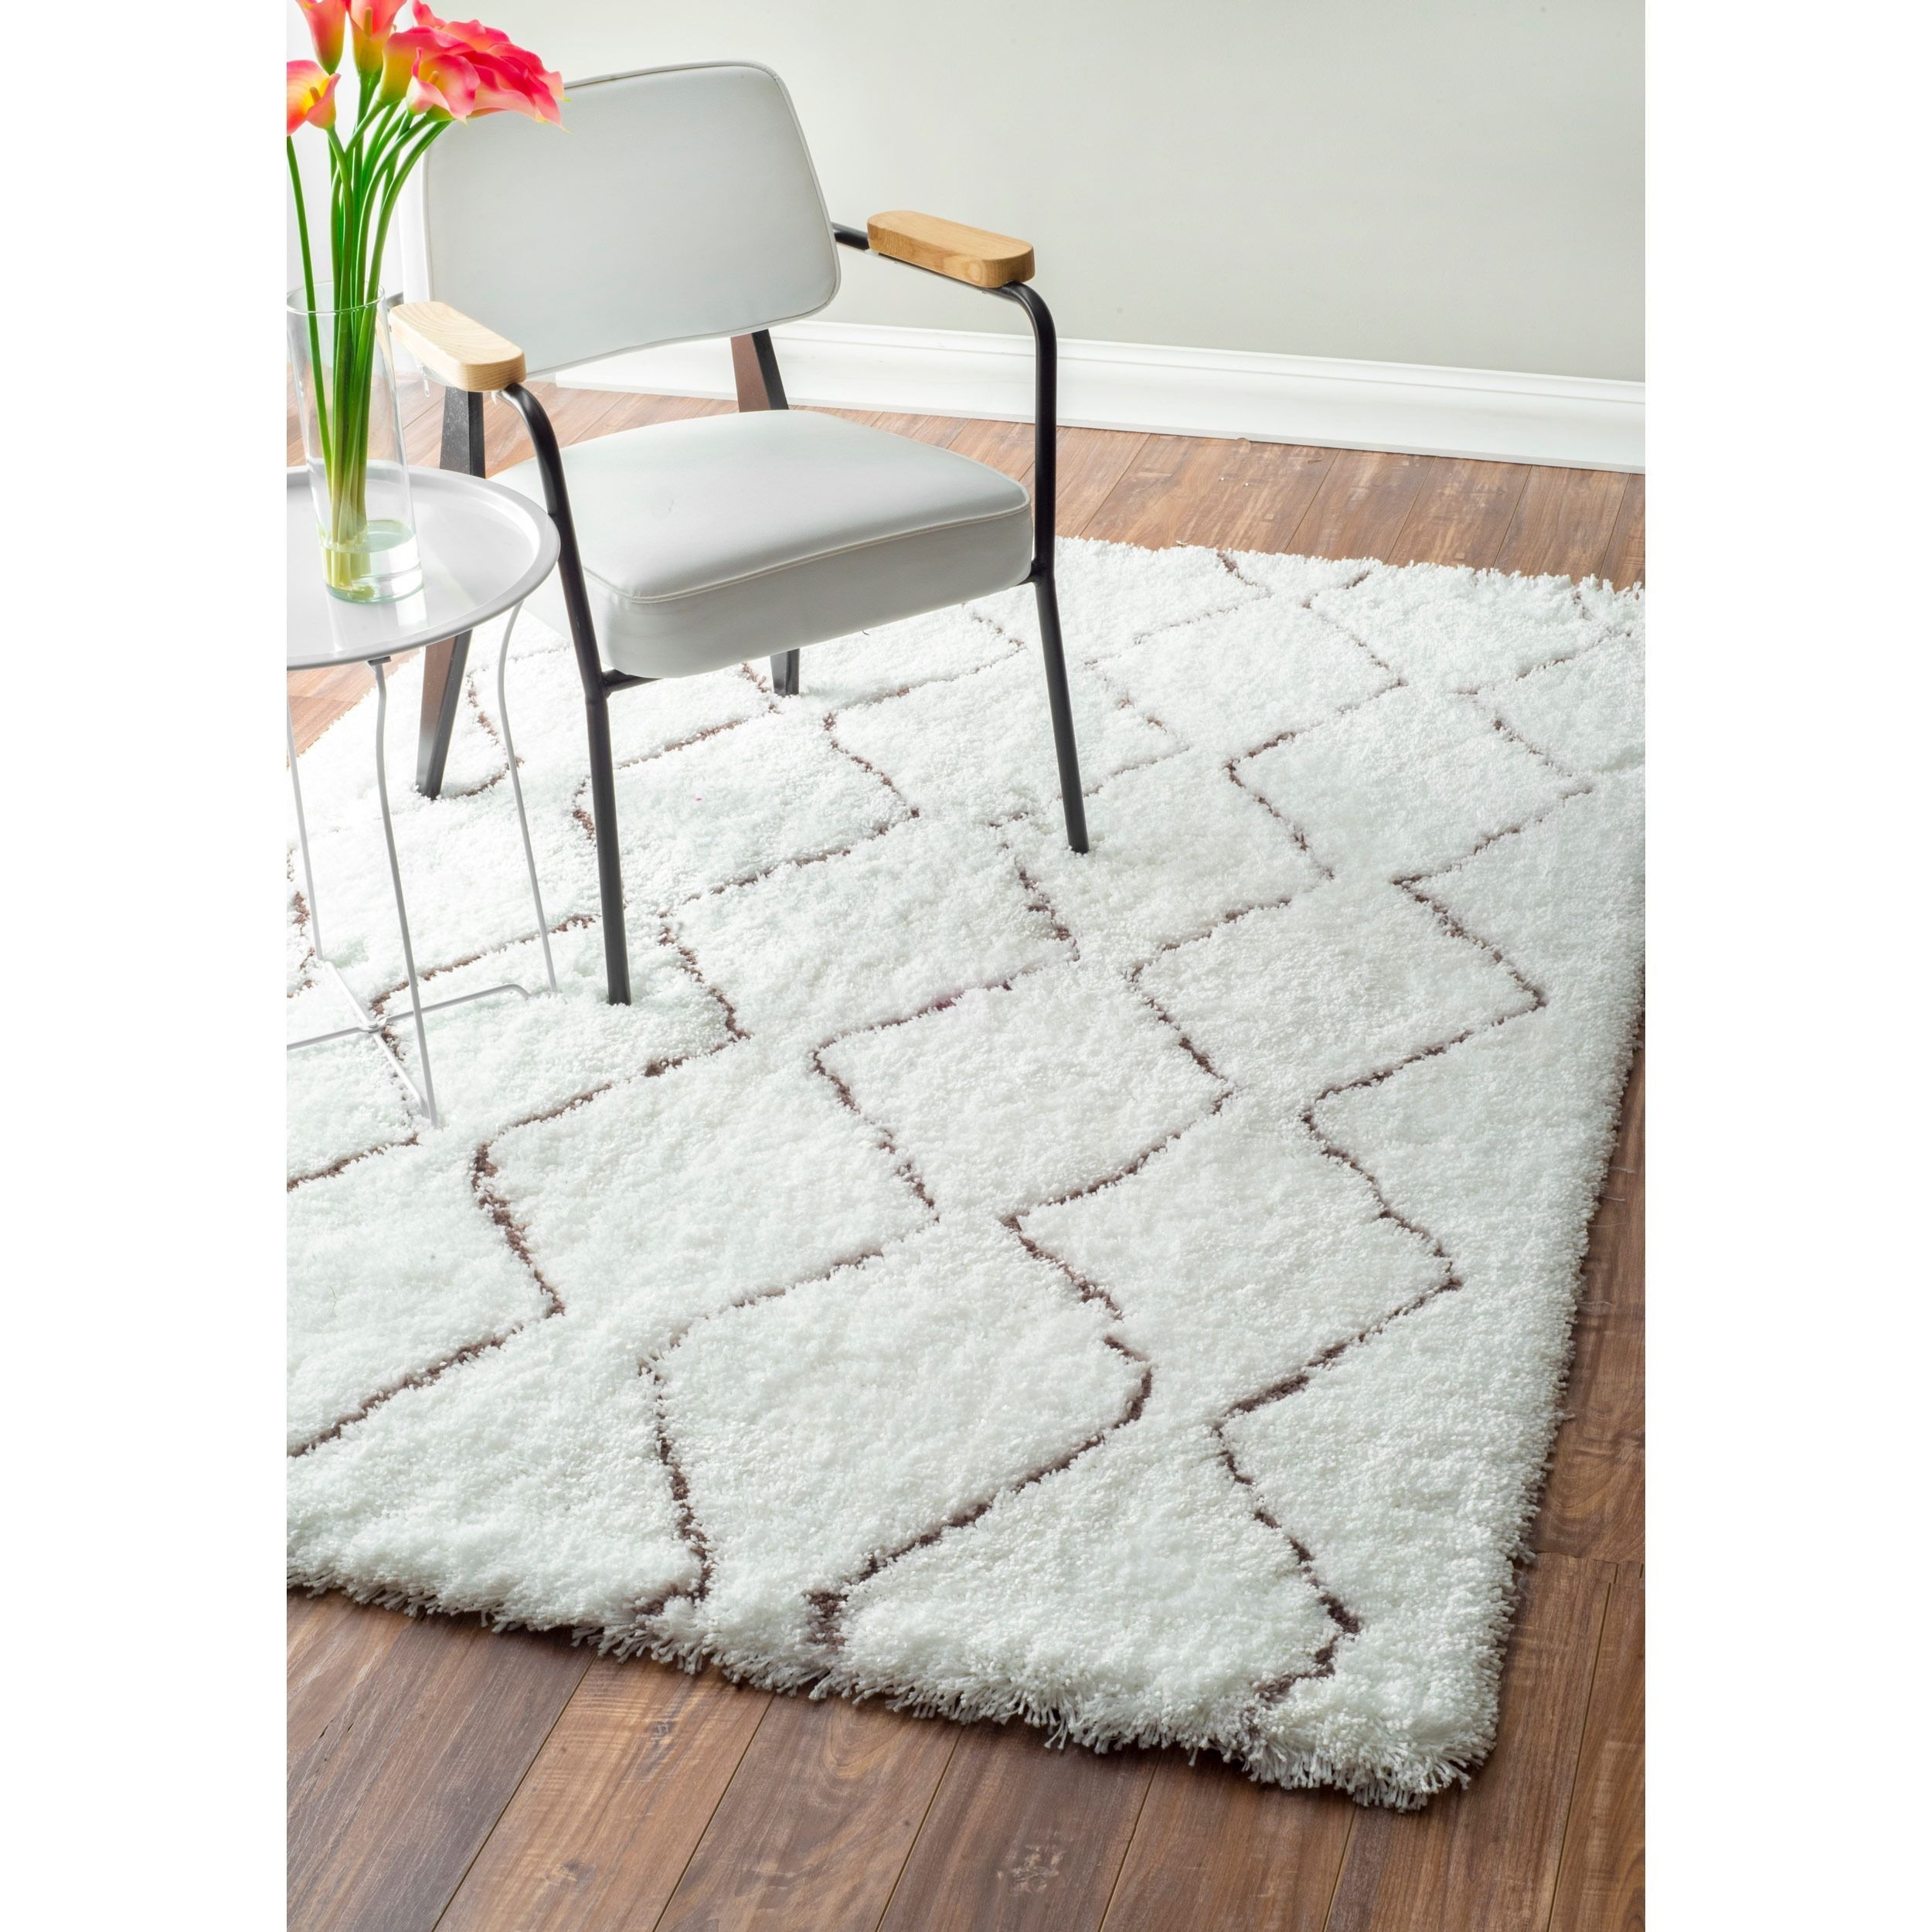 Nuloom Handmade Moroccan Trellis Rug 8 X10 Natural Beige Off White Size X 10 Synthetic Fiber Geometric